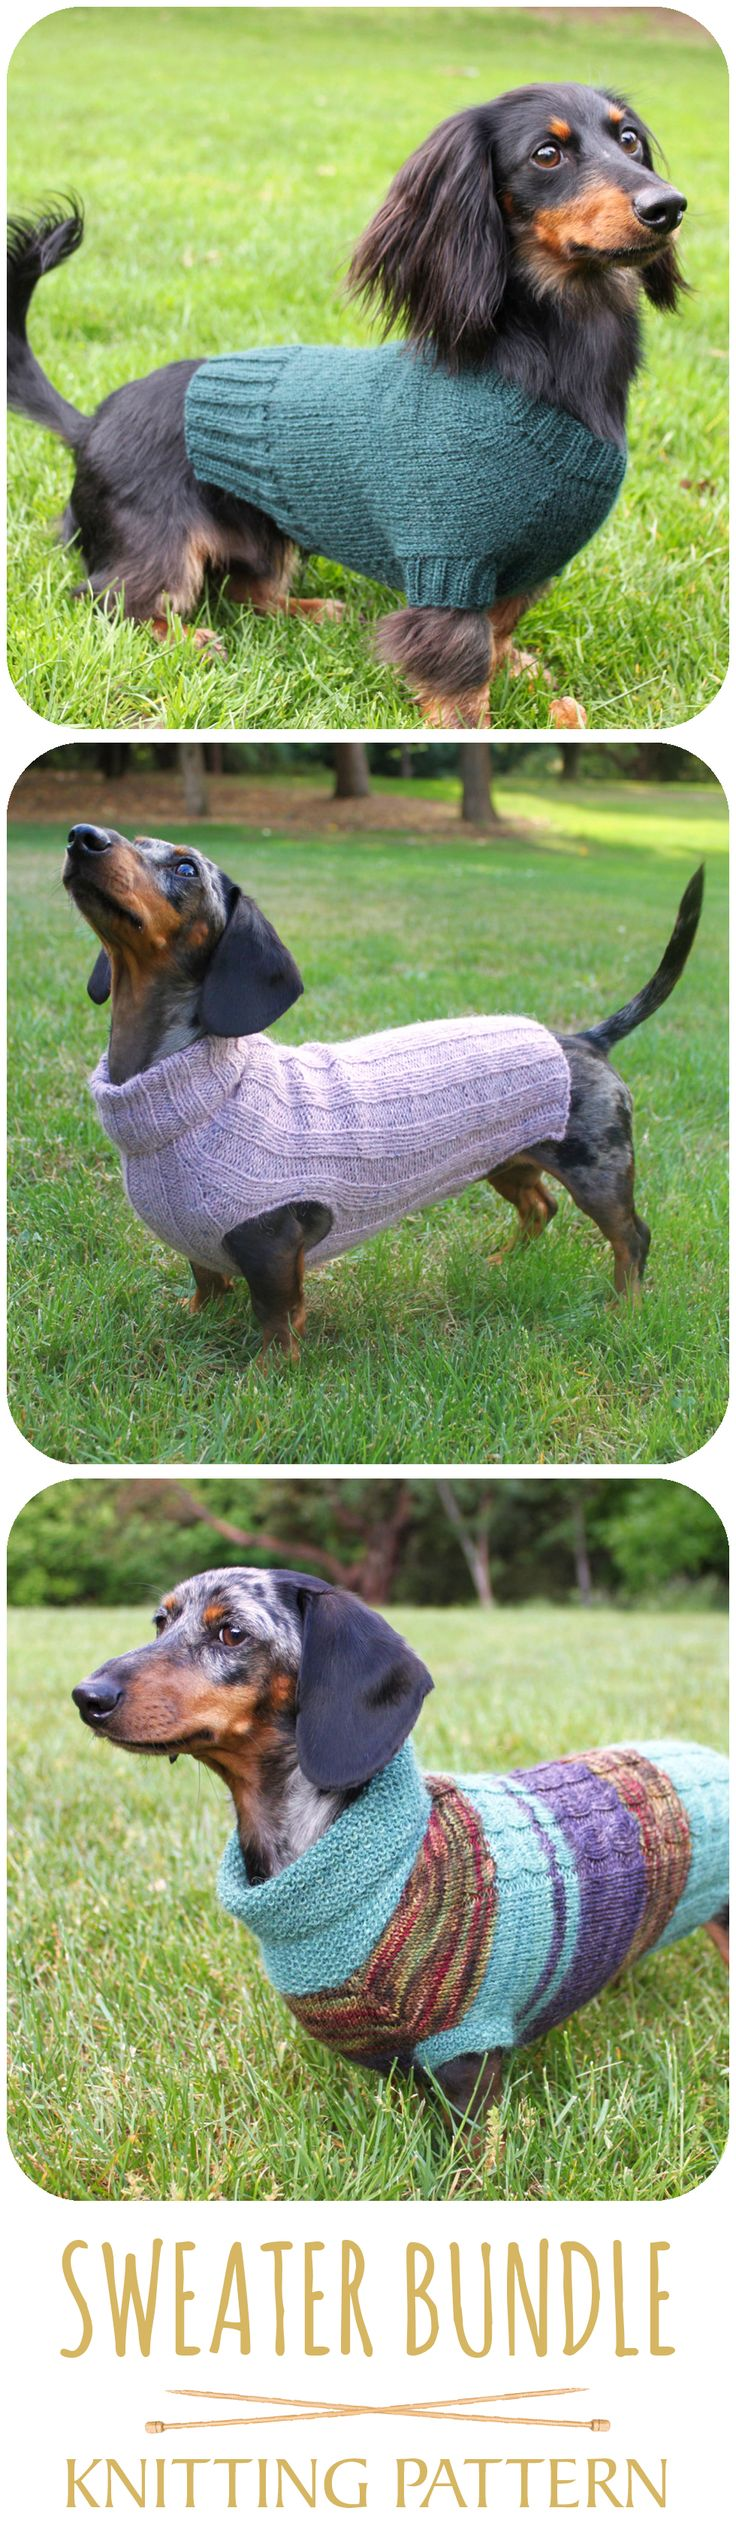 This is a knitting pattern bundle of adorable mini dachshund sweaters. #dachshund #dog #doglovers #minidachshund #dogsweater #knittingpattern #luckyfoxknits #etsy #smalldogsweater #knitting